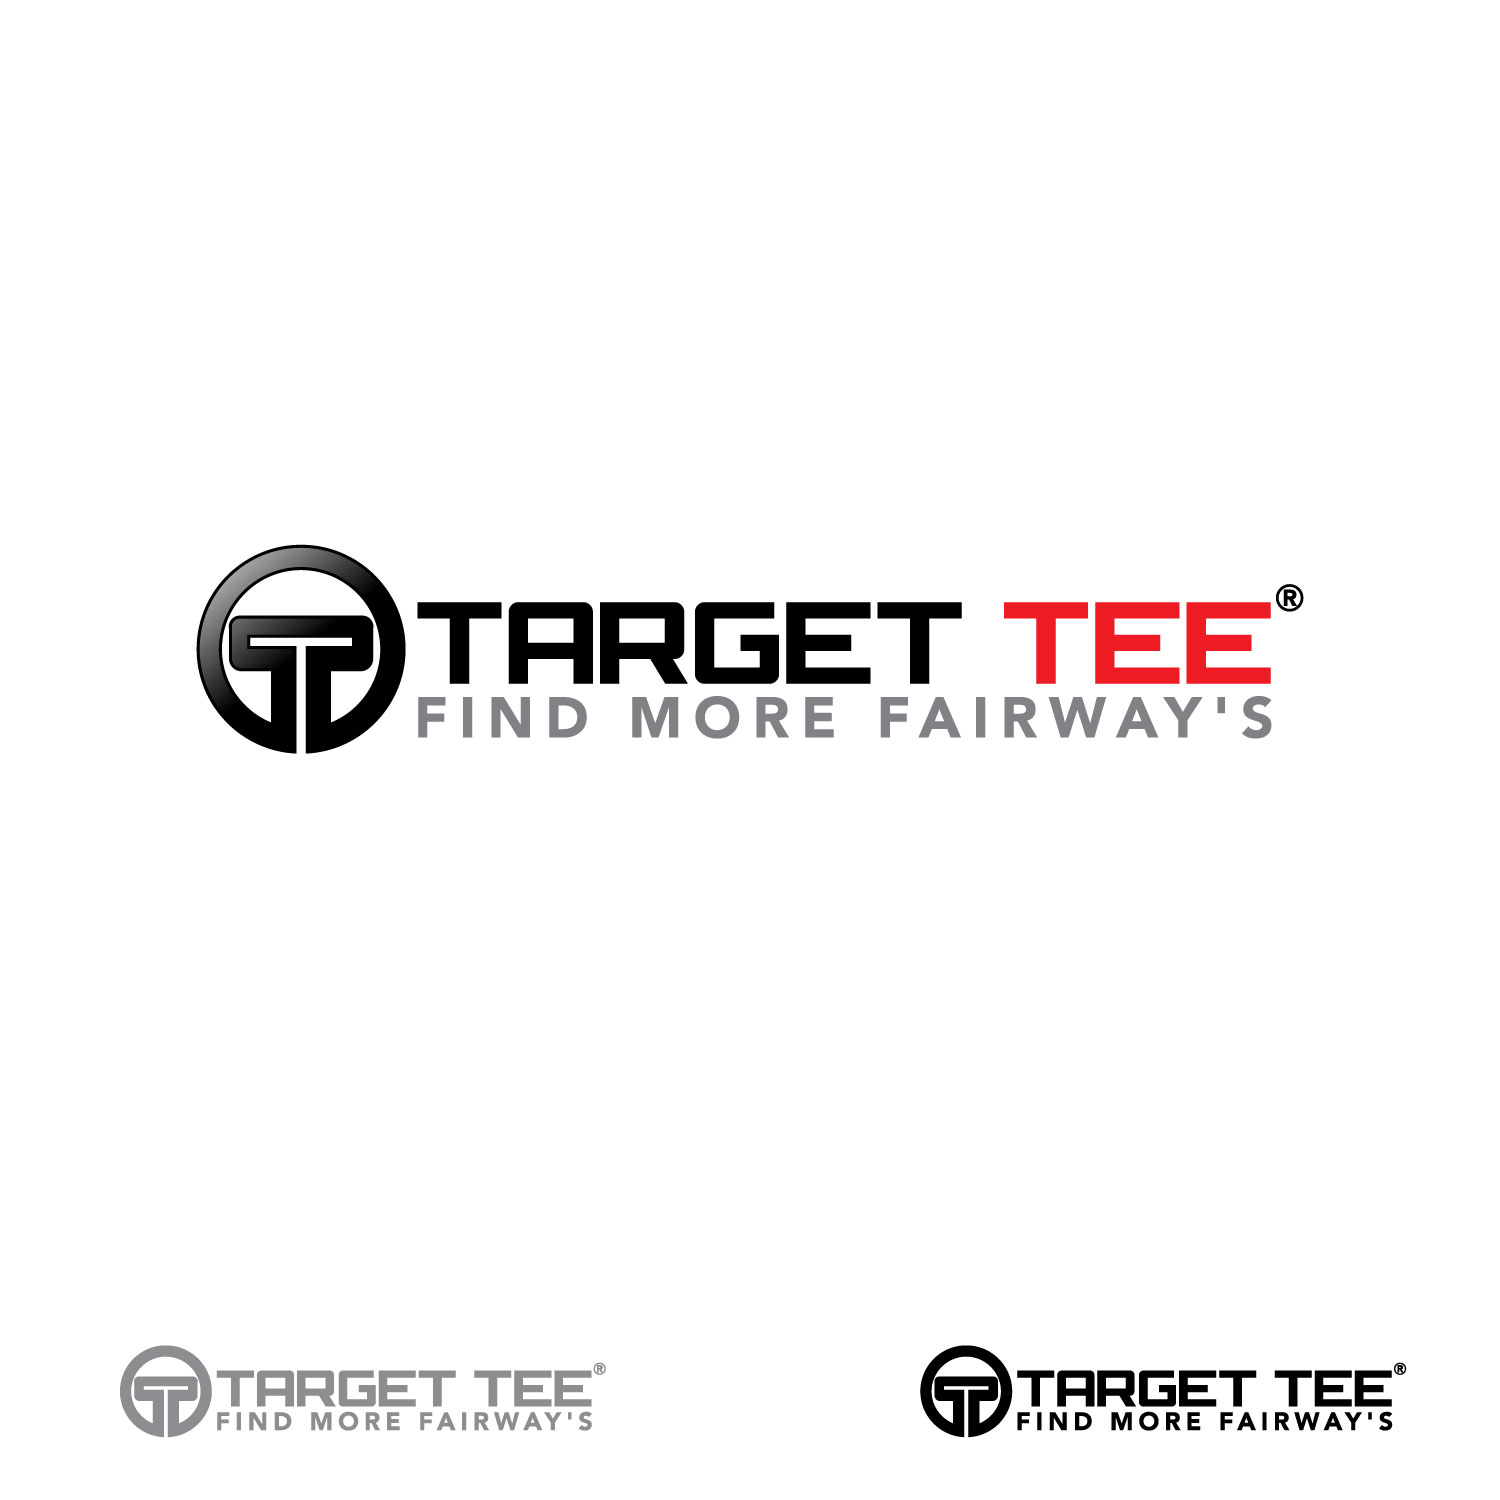 Logo Design by lagalag - Entry No. 48 in the Logo Design Contest Imaginative Logo Design for TARGET-TEE.